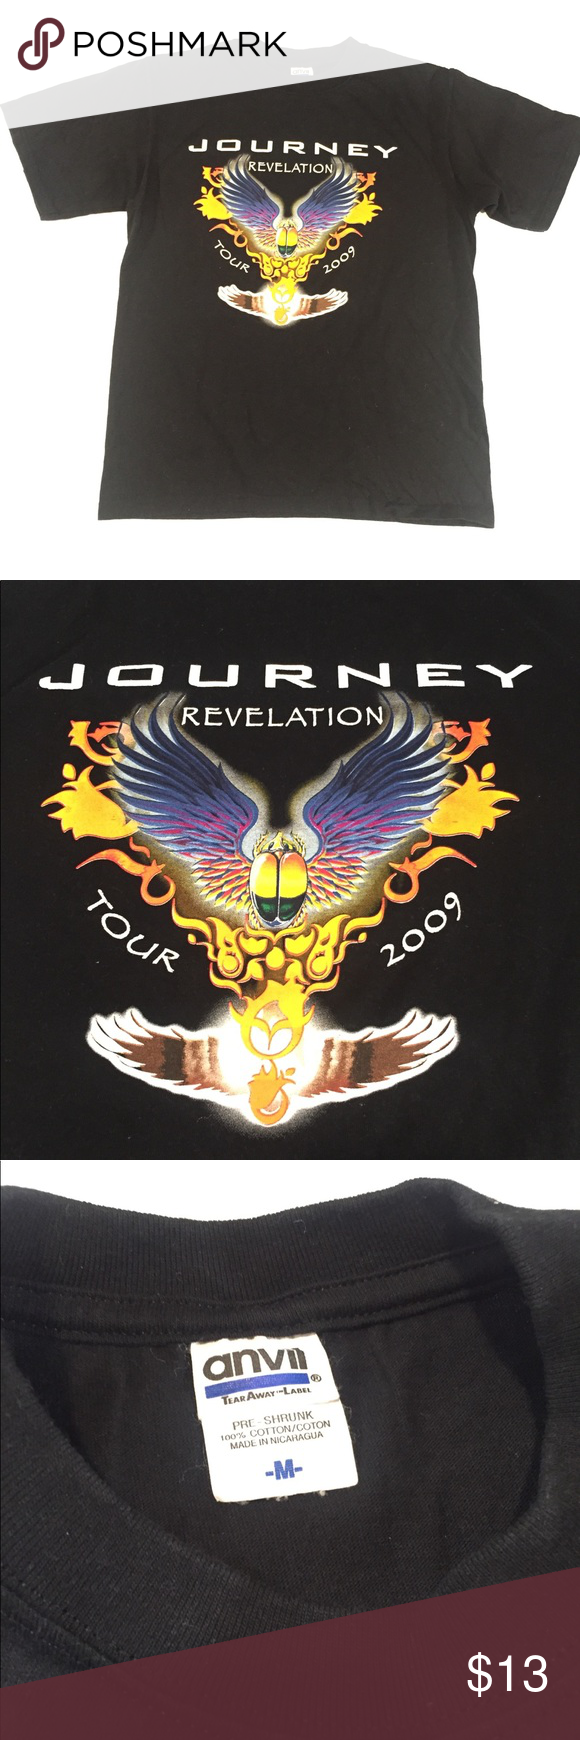 36bdbcfbe Journey Revelation 2009 Tour Graphic T-Shirt Journey Revelation 2009 Tour  Graphic T-Shirt Men's Size: Medium In Great Condition, Normal Aging Anvil  Shirts ...